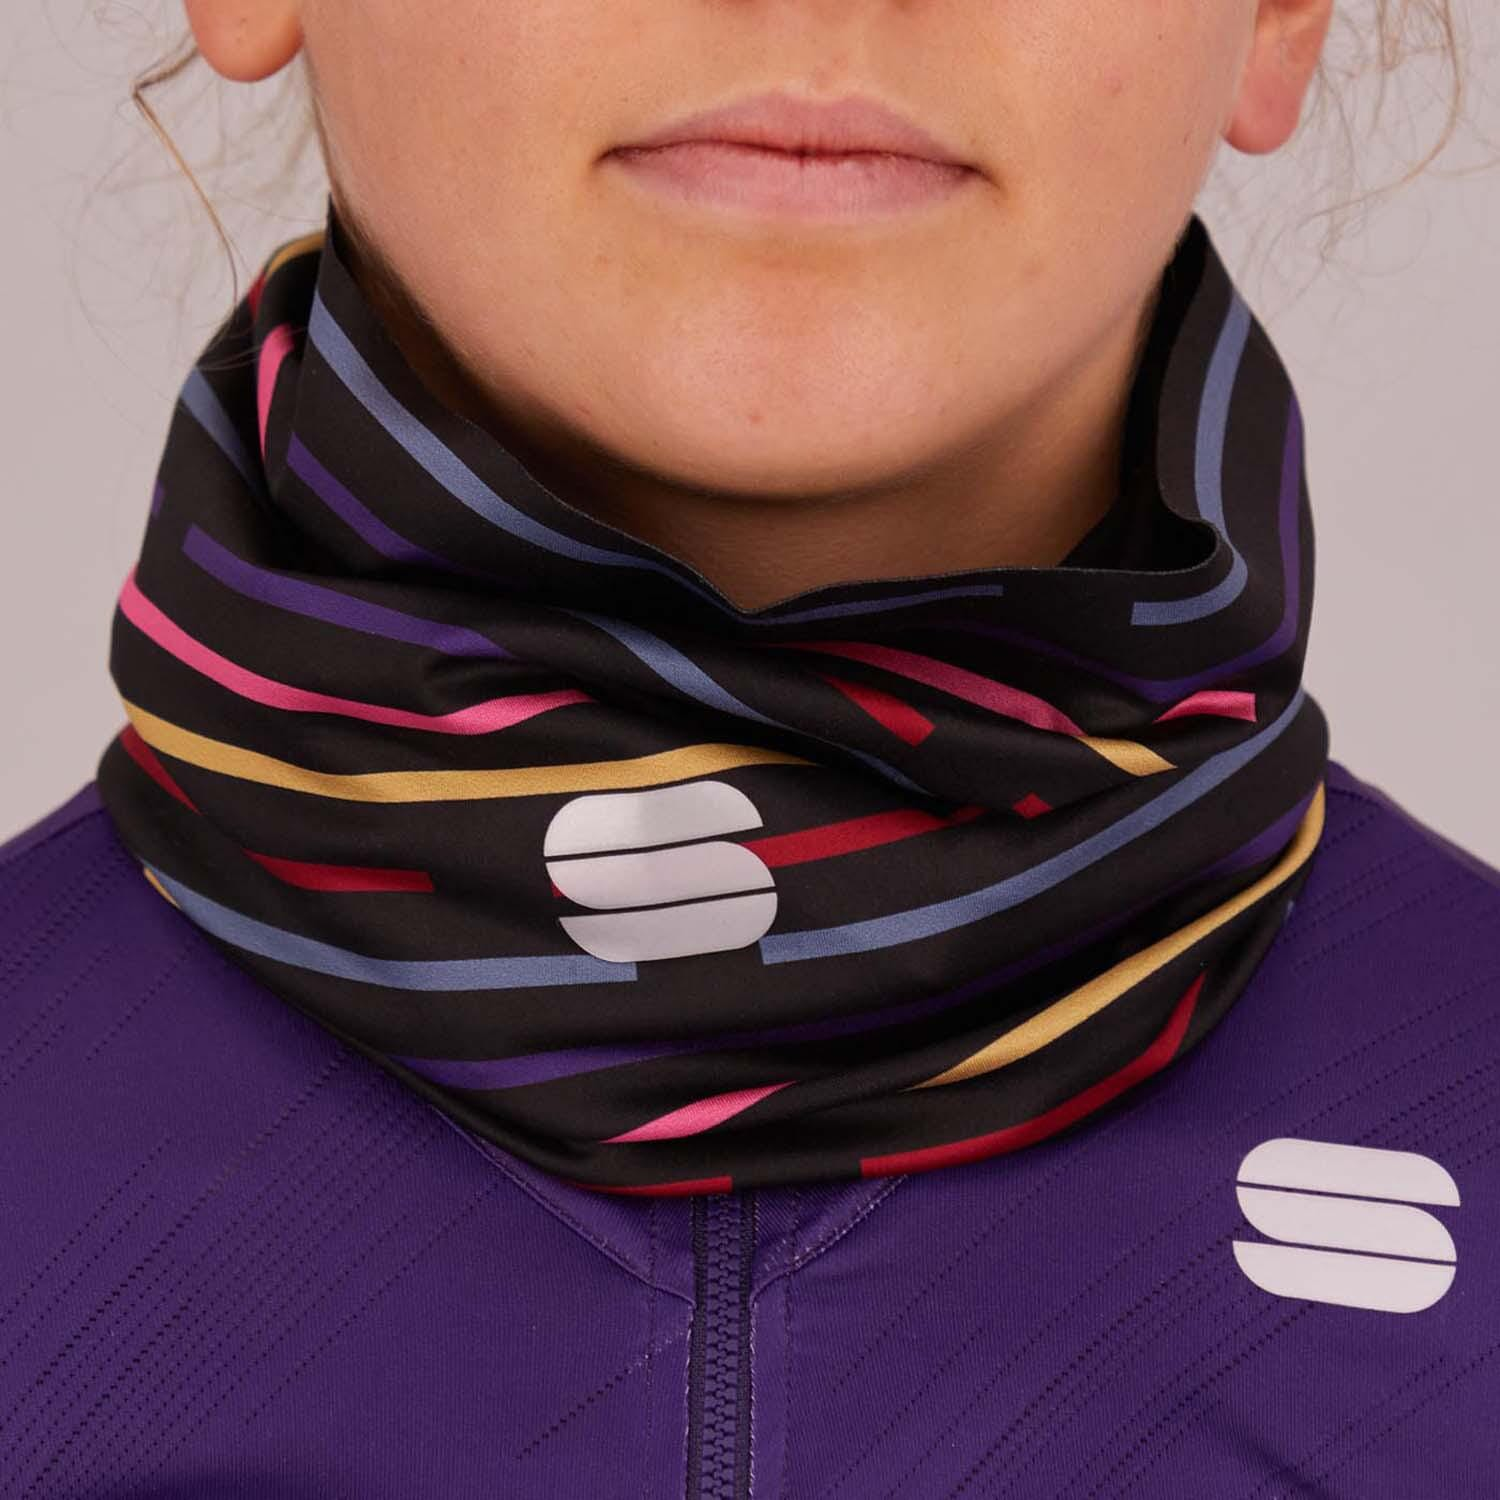 Sportful-Sportful Vélodrome Women's Neck Warmer-Black/Multicolor-UNI-SF210660028-saddleback-elite-performance-cycling